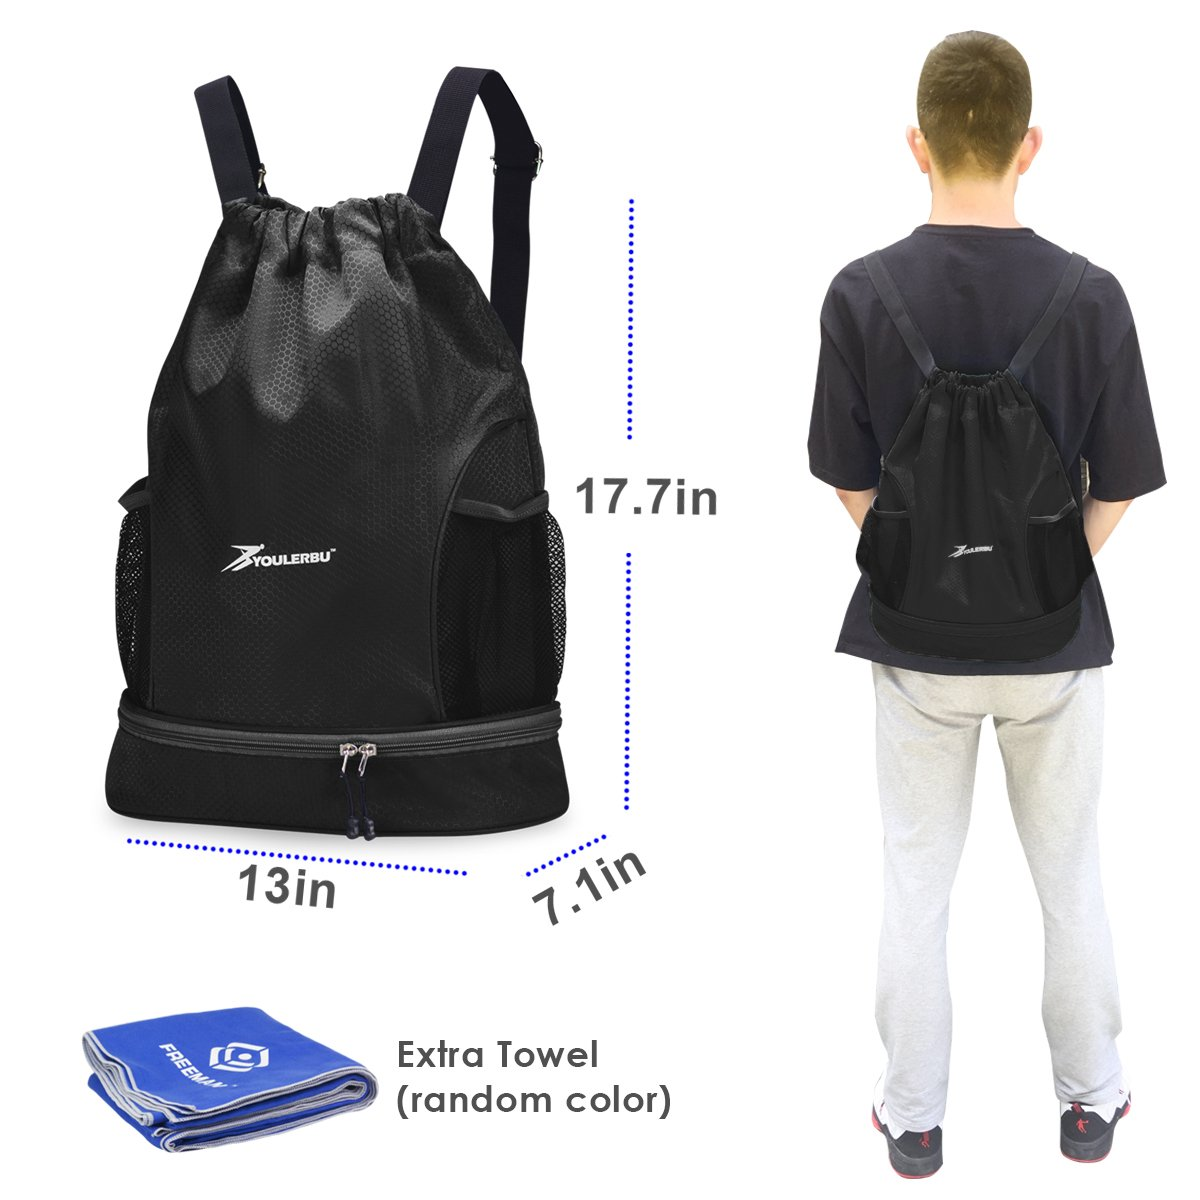 YOULERBU Gym Drawstring Bag, Sports Backpack with Shoe Compartment, Swim Bag with Wet Dry Compartments for Women Men (Black) by YOULERBU (Image #4)